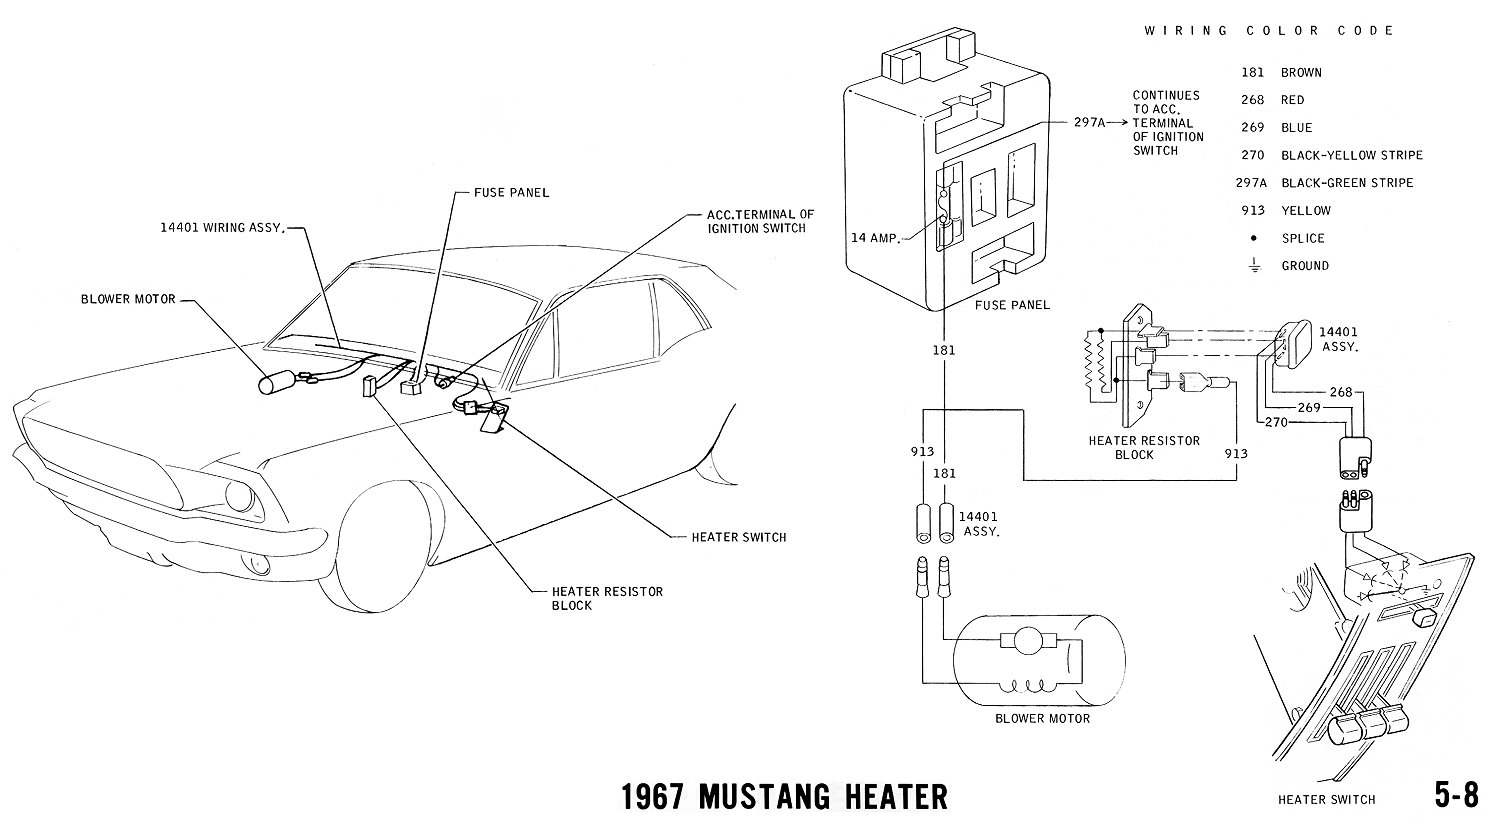 67heater 1967 mustang wiring and vacuum diagrams average joe restoration 1966 mustang headlight wiring diagram at readyjetset.co